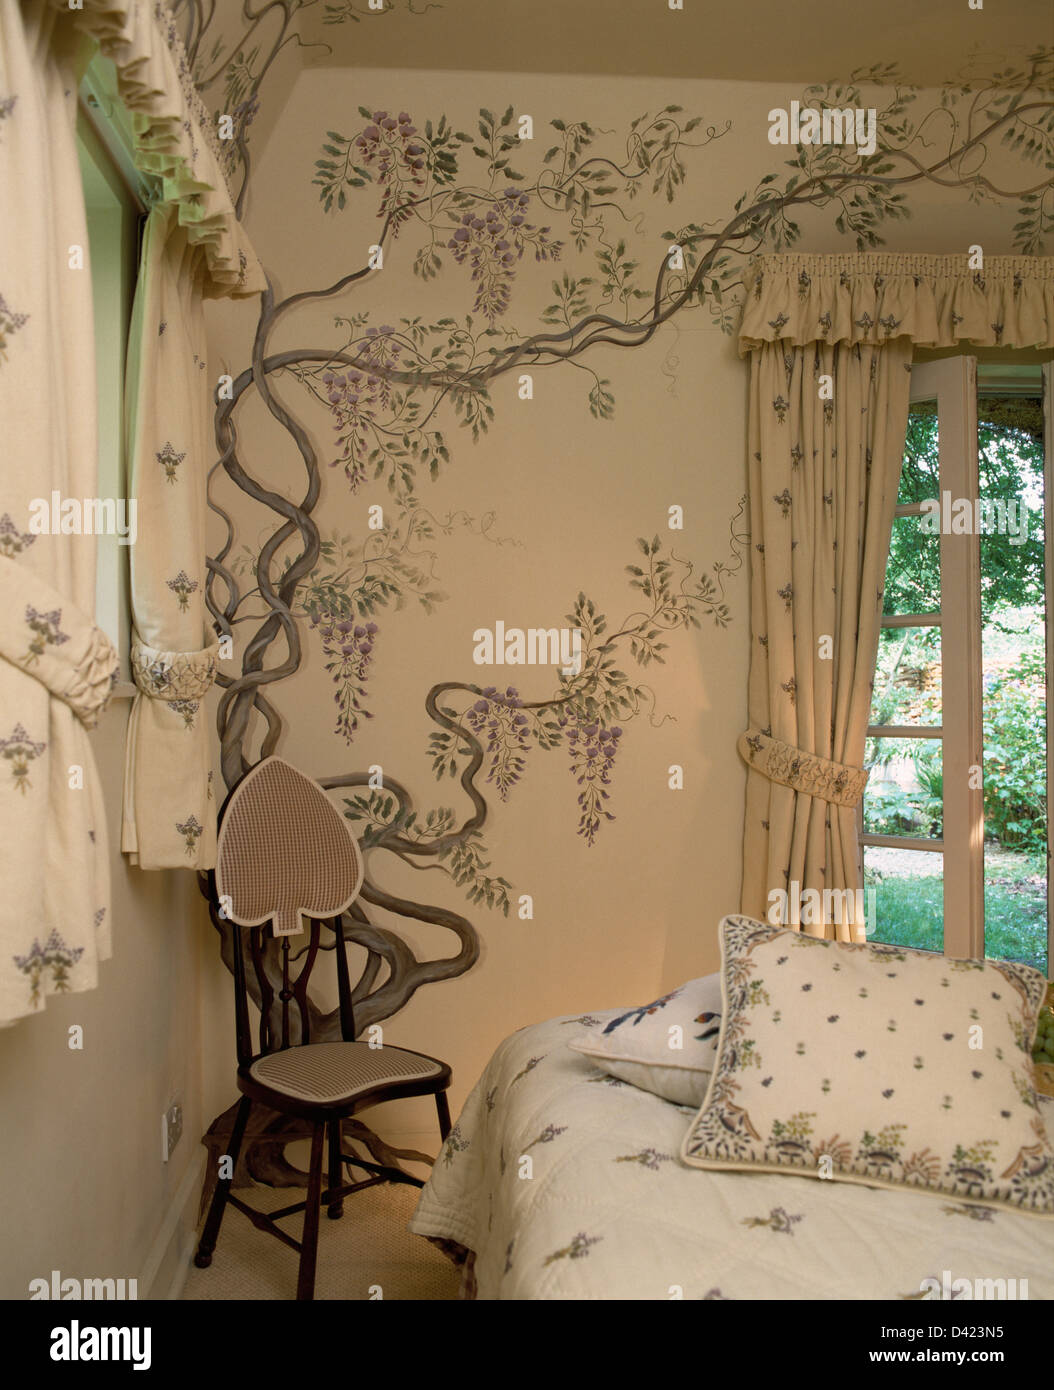 small chair in corner of cottage bedroom with hand painted wisteria